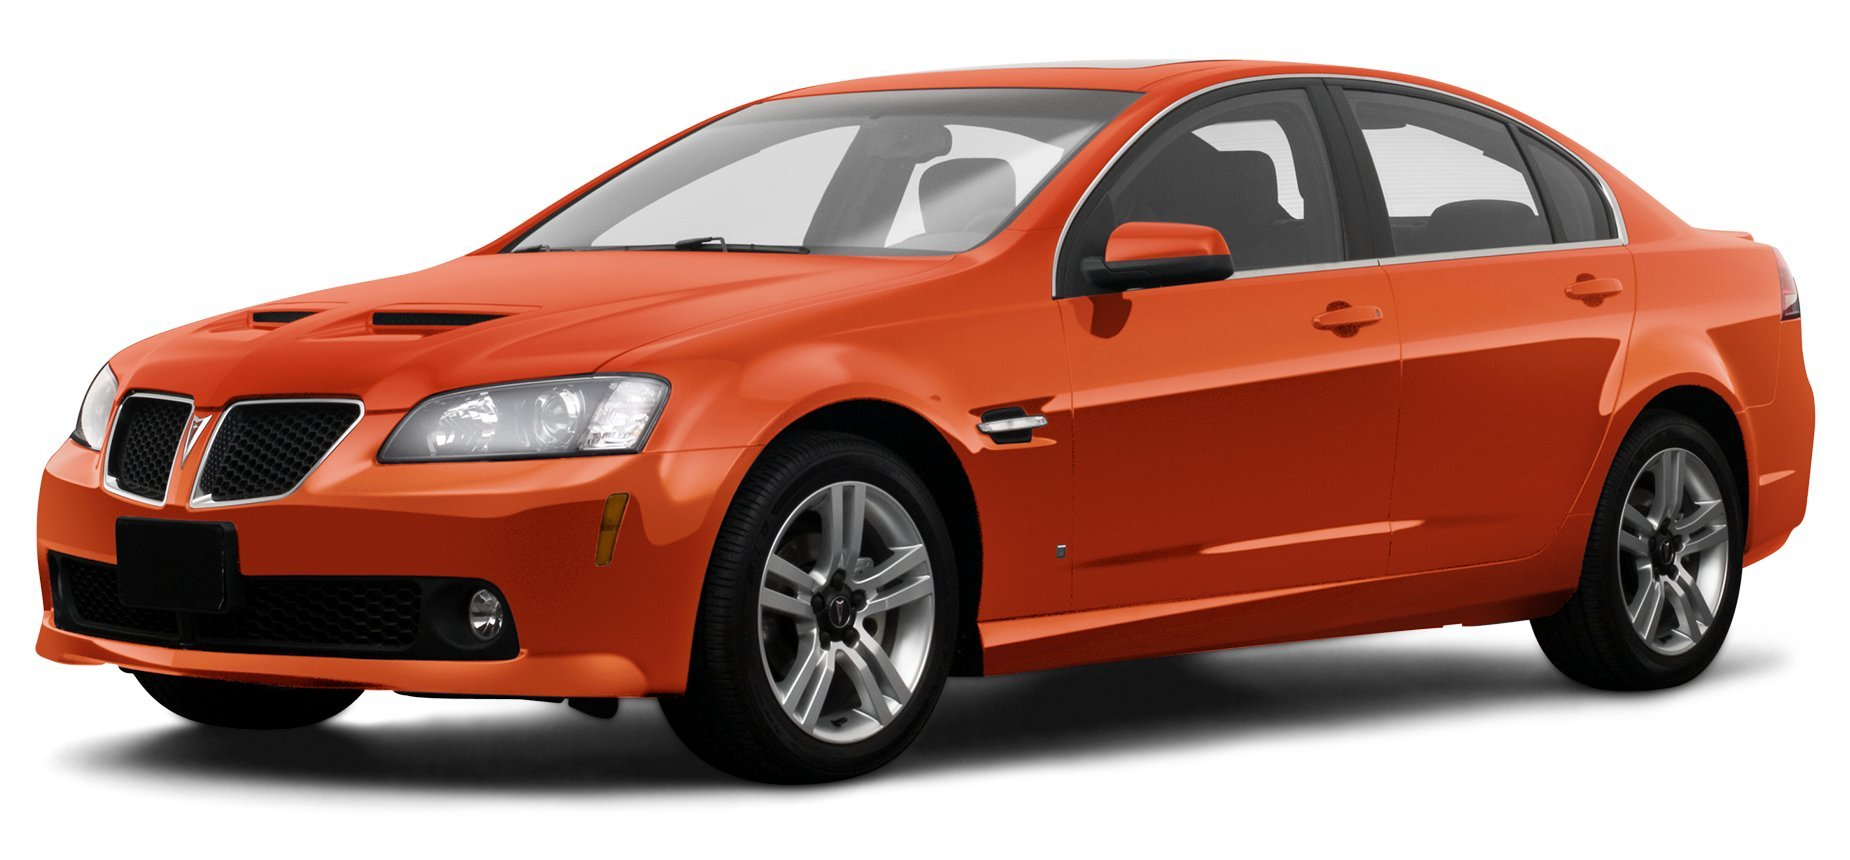 2008 Dodge Charger Reviews Images And Specs Vehicles 1949 R T 4 Door Sedan Rear Wheel Drive Pontiac G8